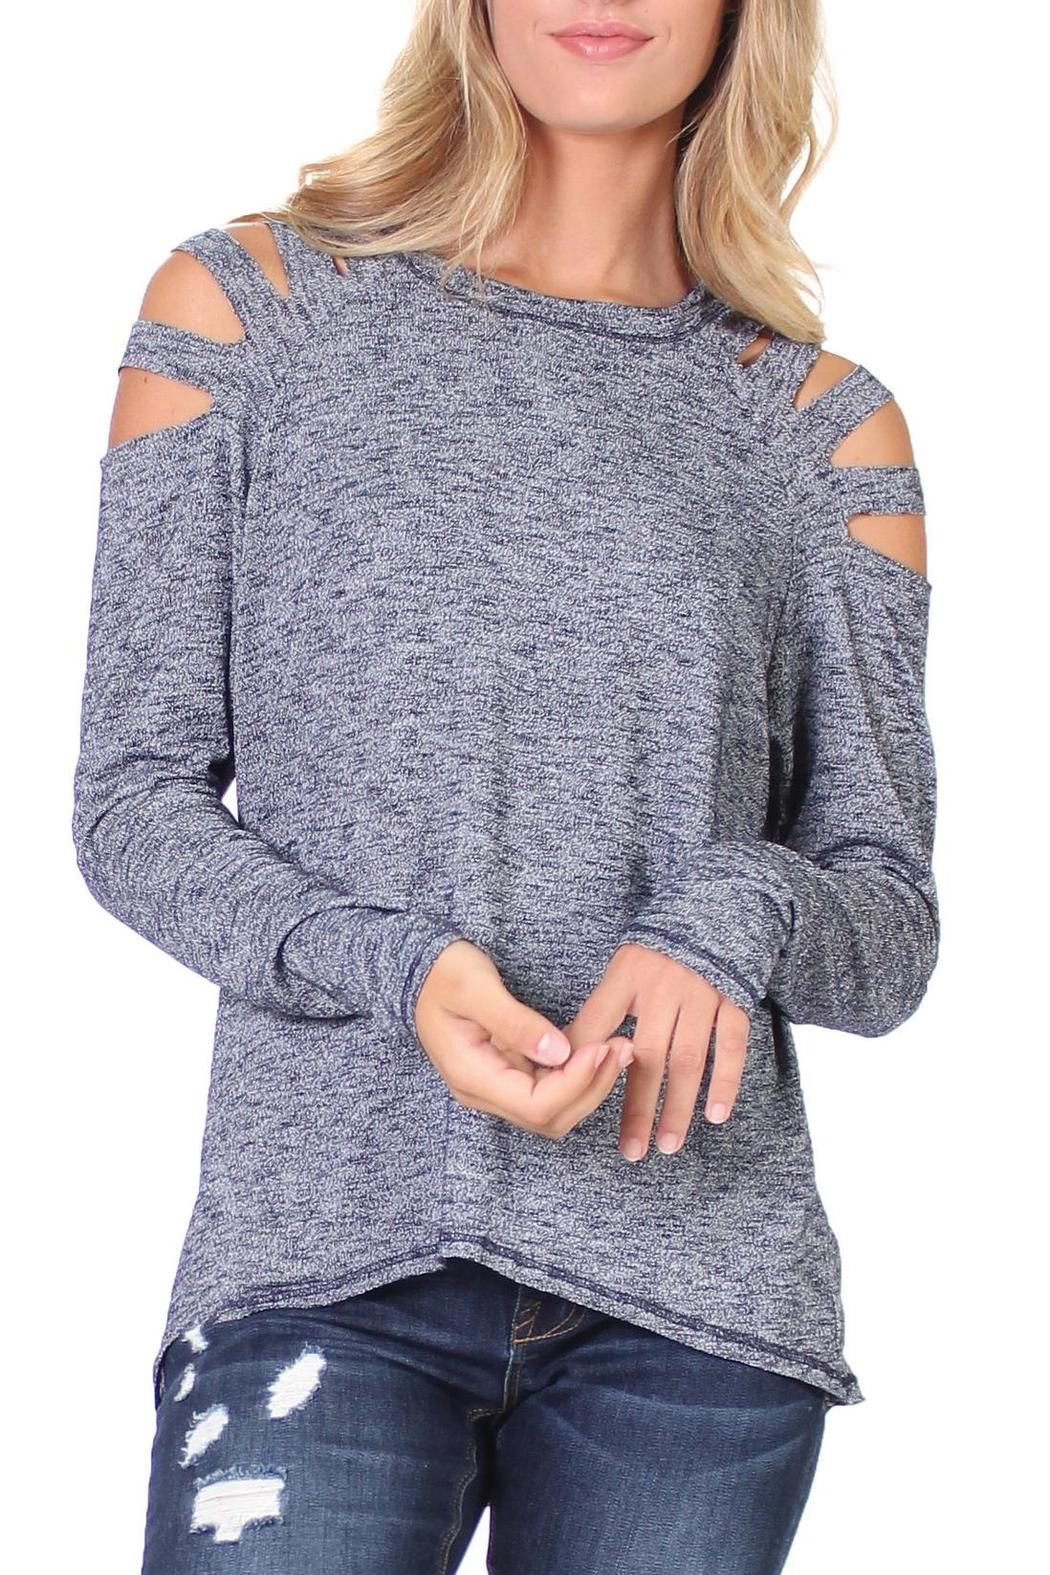 e1ff3784b0045 Long sleeve Hi-lo cold shoulder top with 4 slit . So soft and comfortable  is great for day or night. Cold Shoulder Top by Elan. Atlanta Georgia